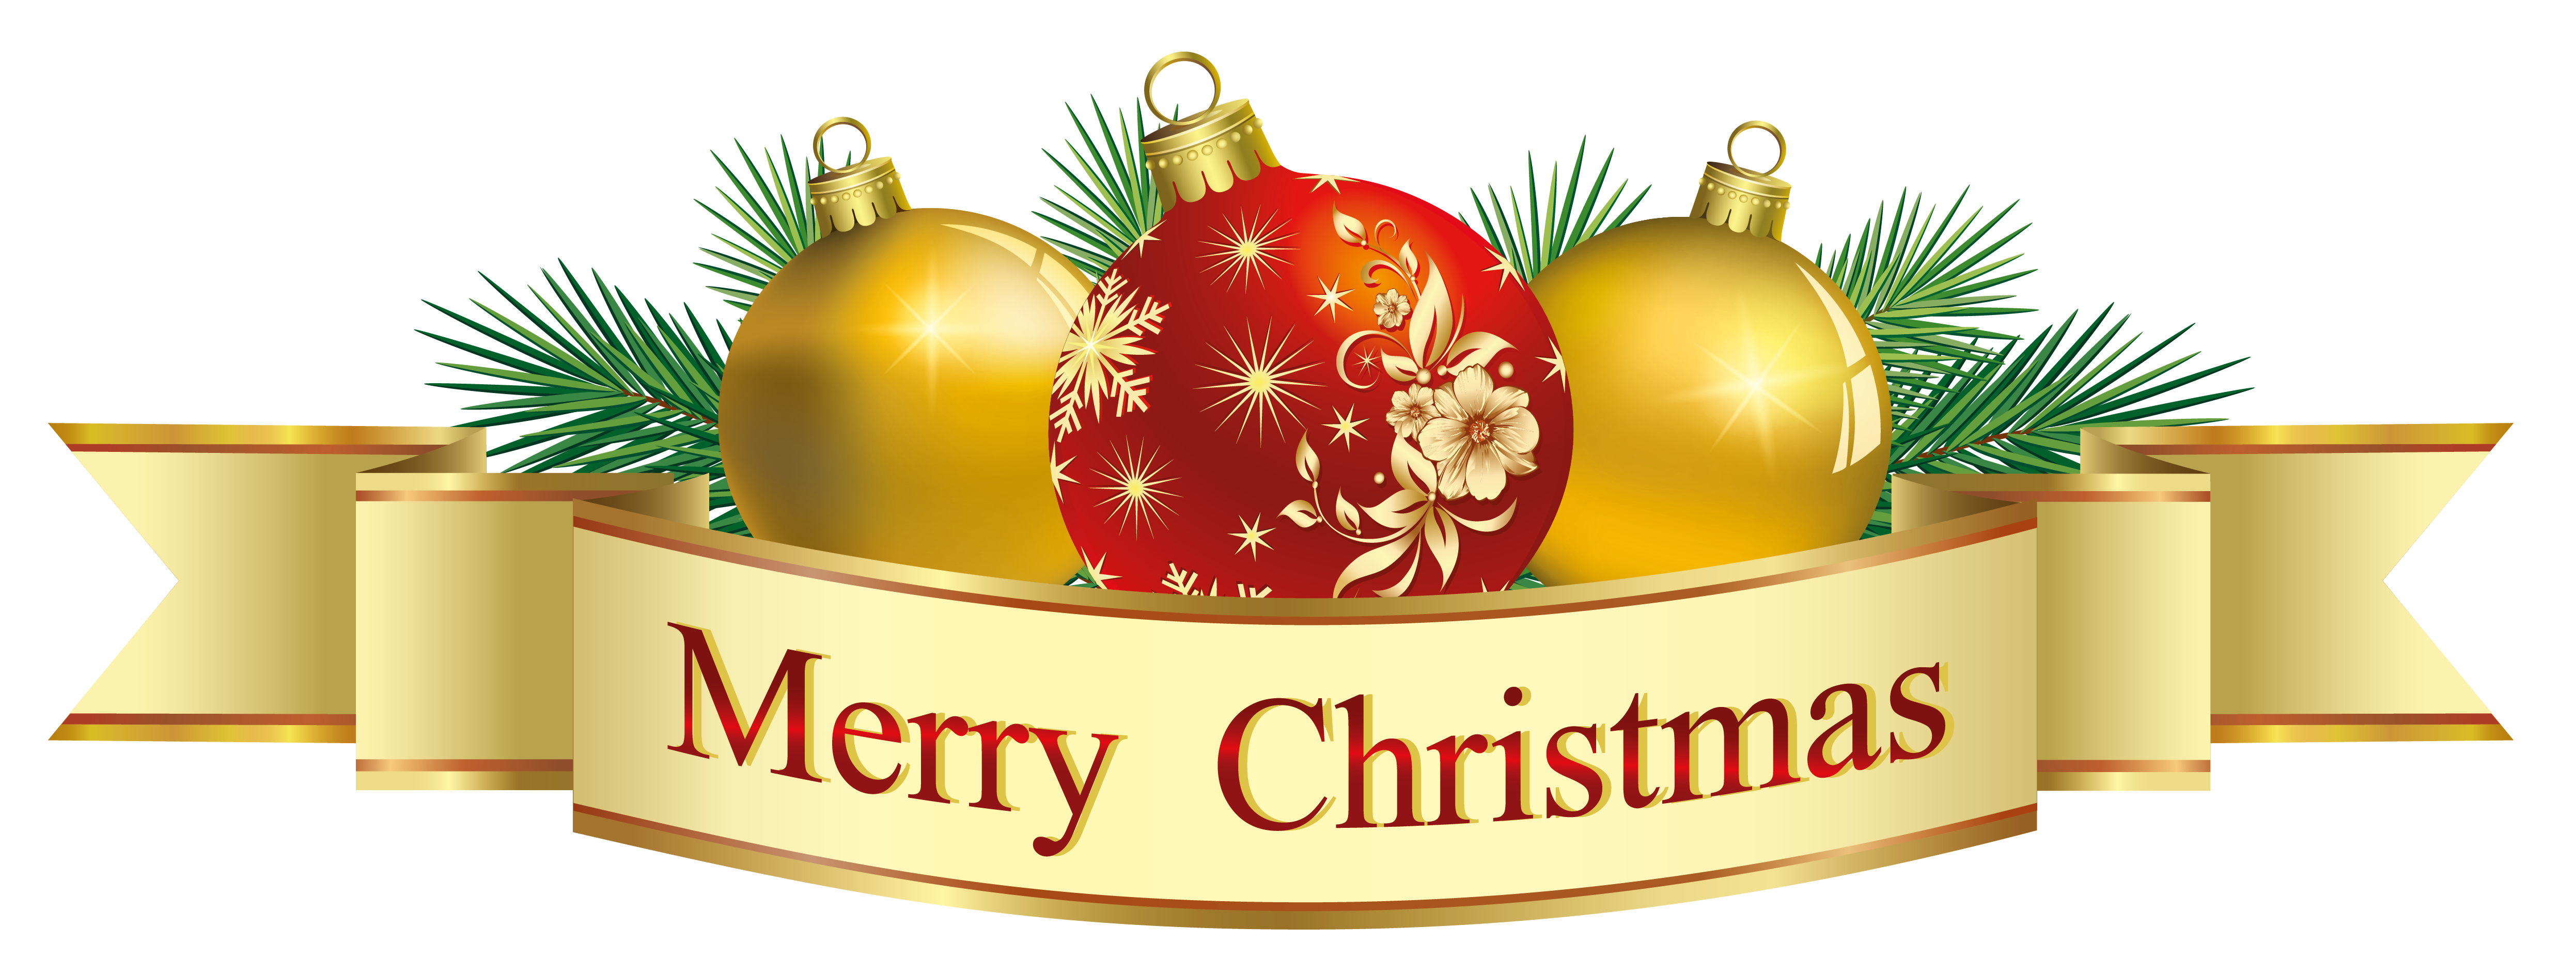 Merry christmas transparent clipart kid-Merry christmas transparent clipart kid-5